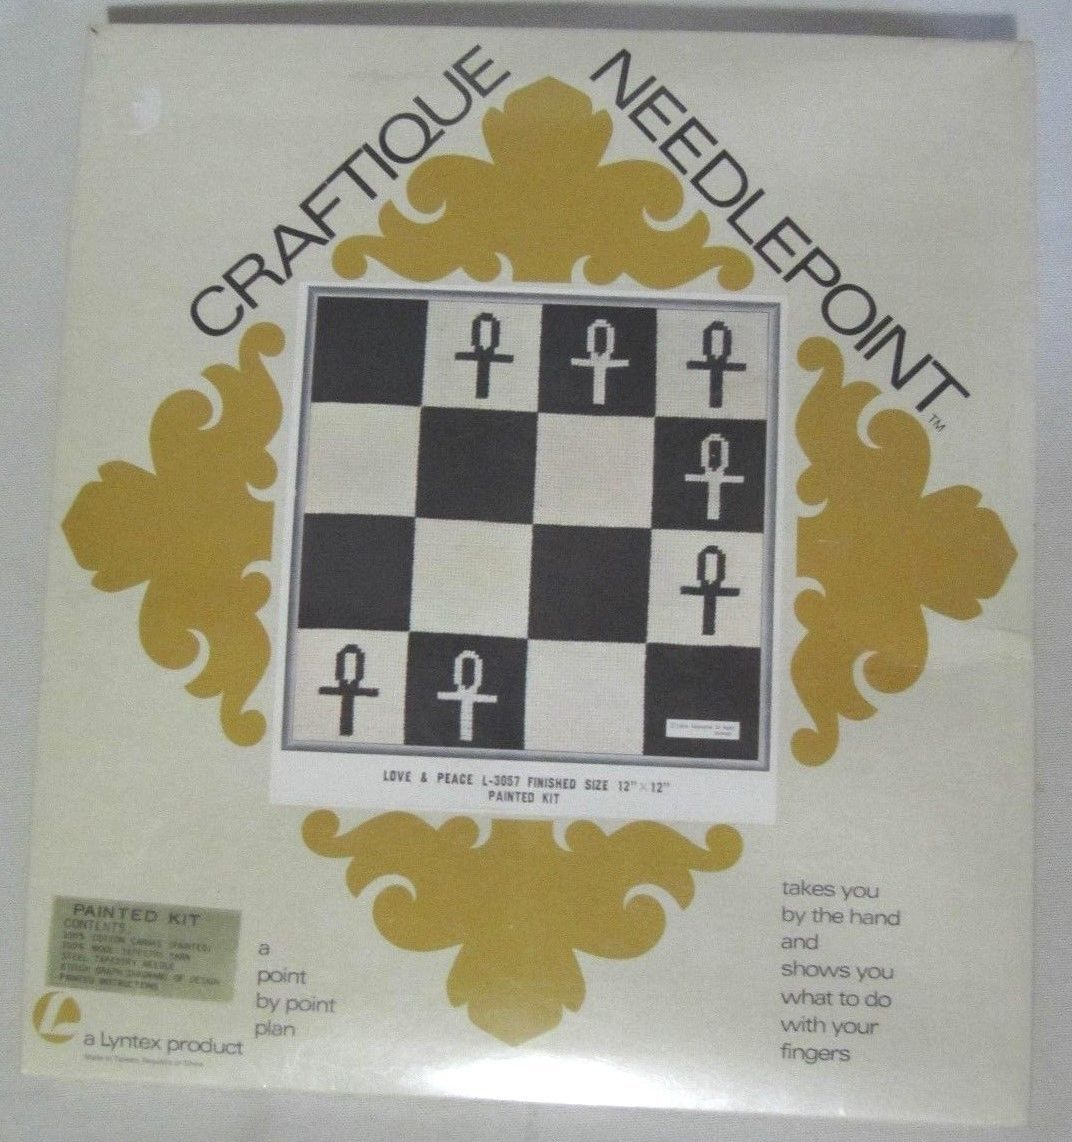 """CRAFTIQUE NEEDLEPOINT KIT 'LOVE & PEACE' 12"""" X 12"""" COMPLETE NEW! - $12.95"""